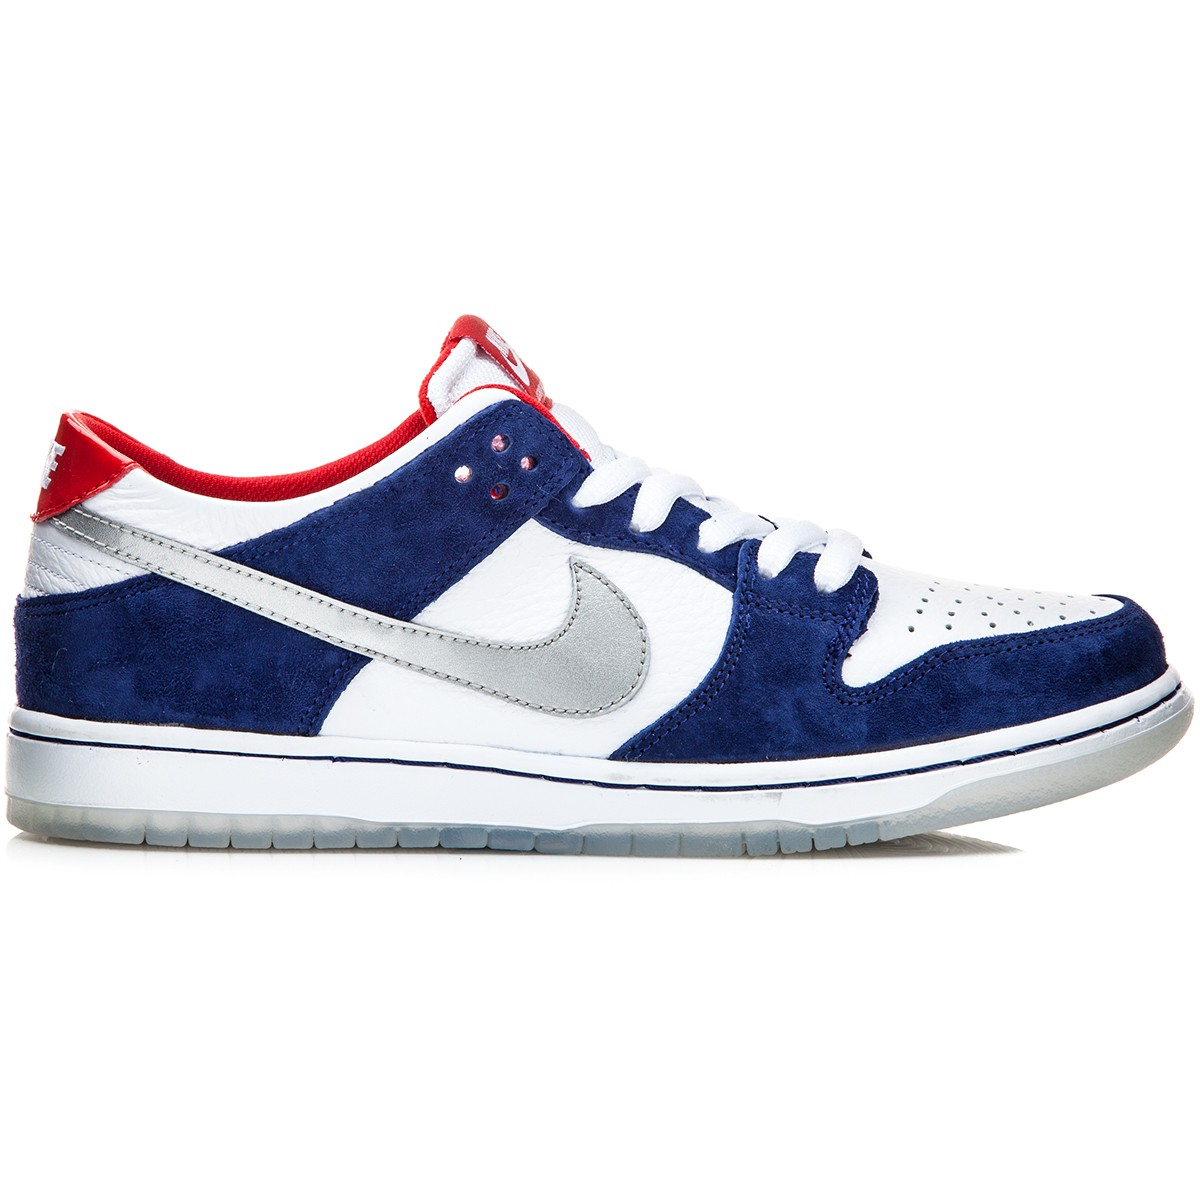 Nike Sb Ishod Dunk Blue Dress Shoes Nike Sb Ishod Dunk Blue Dress ... 7b9a5f33bf